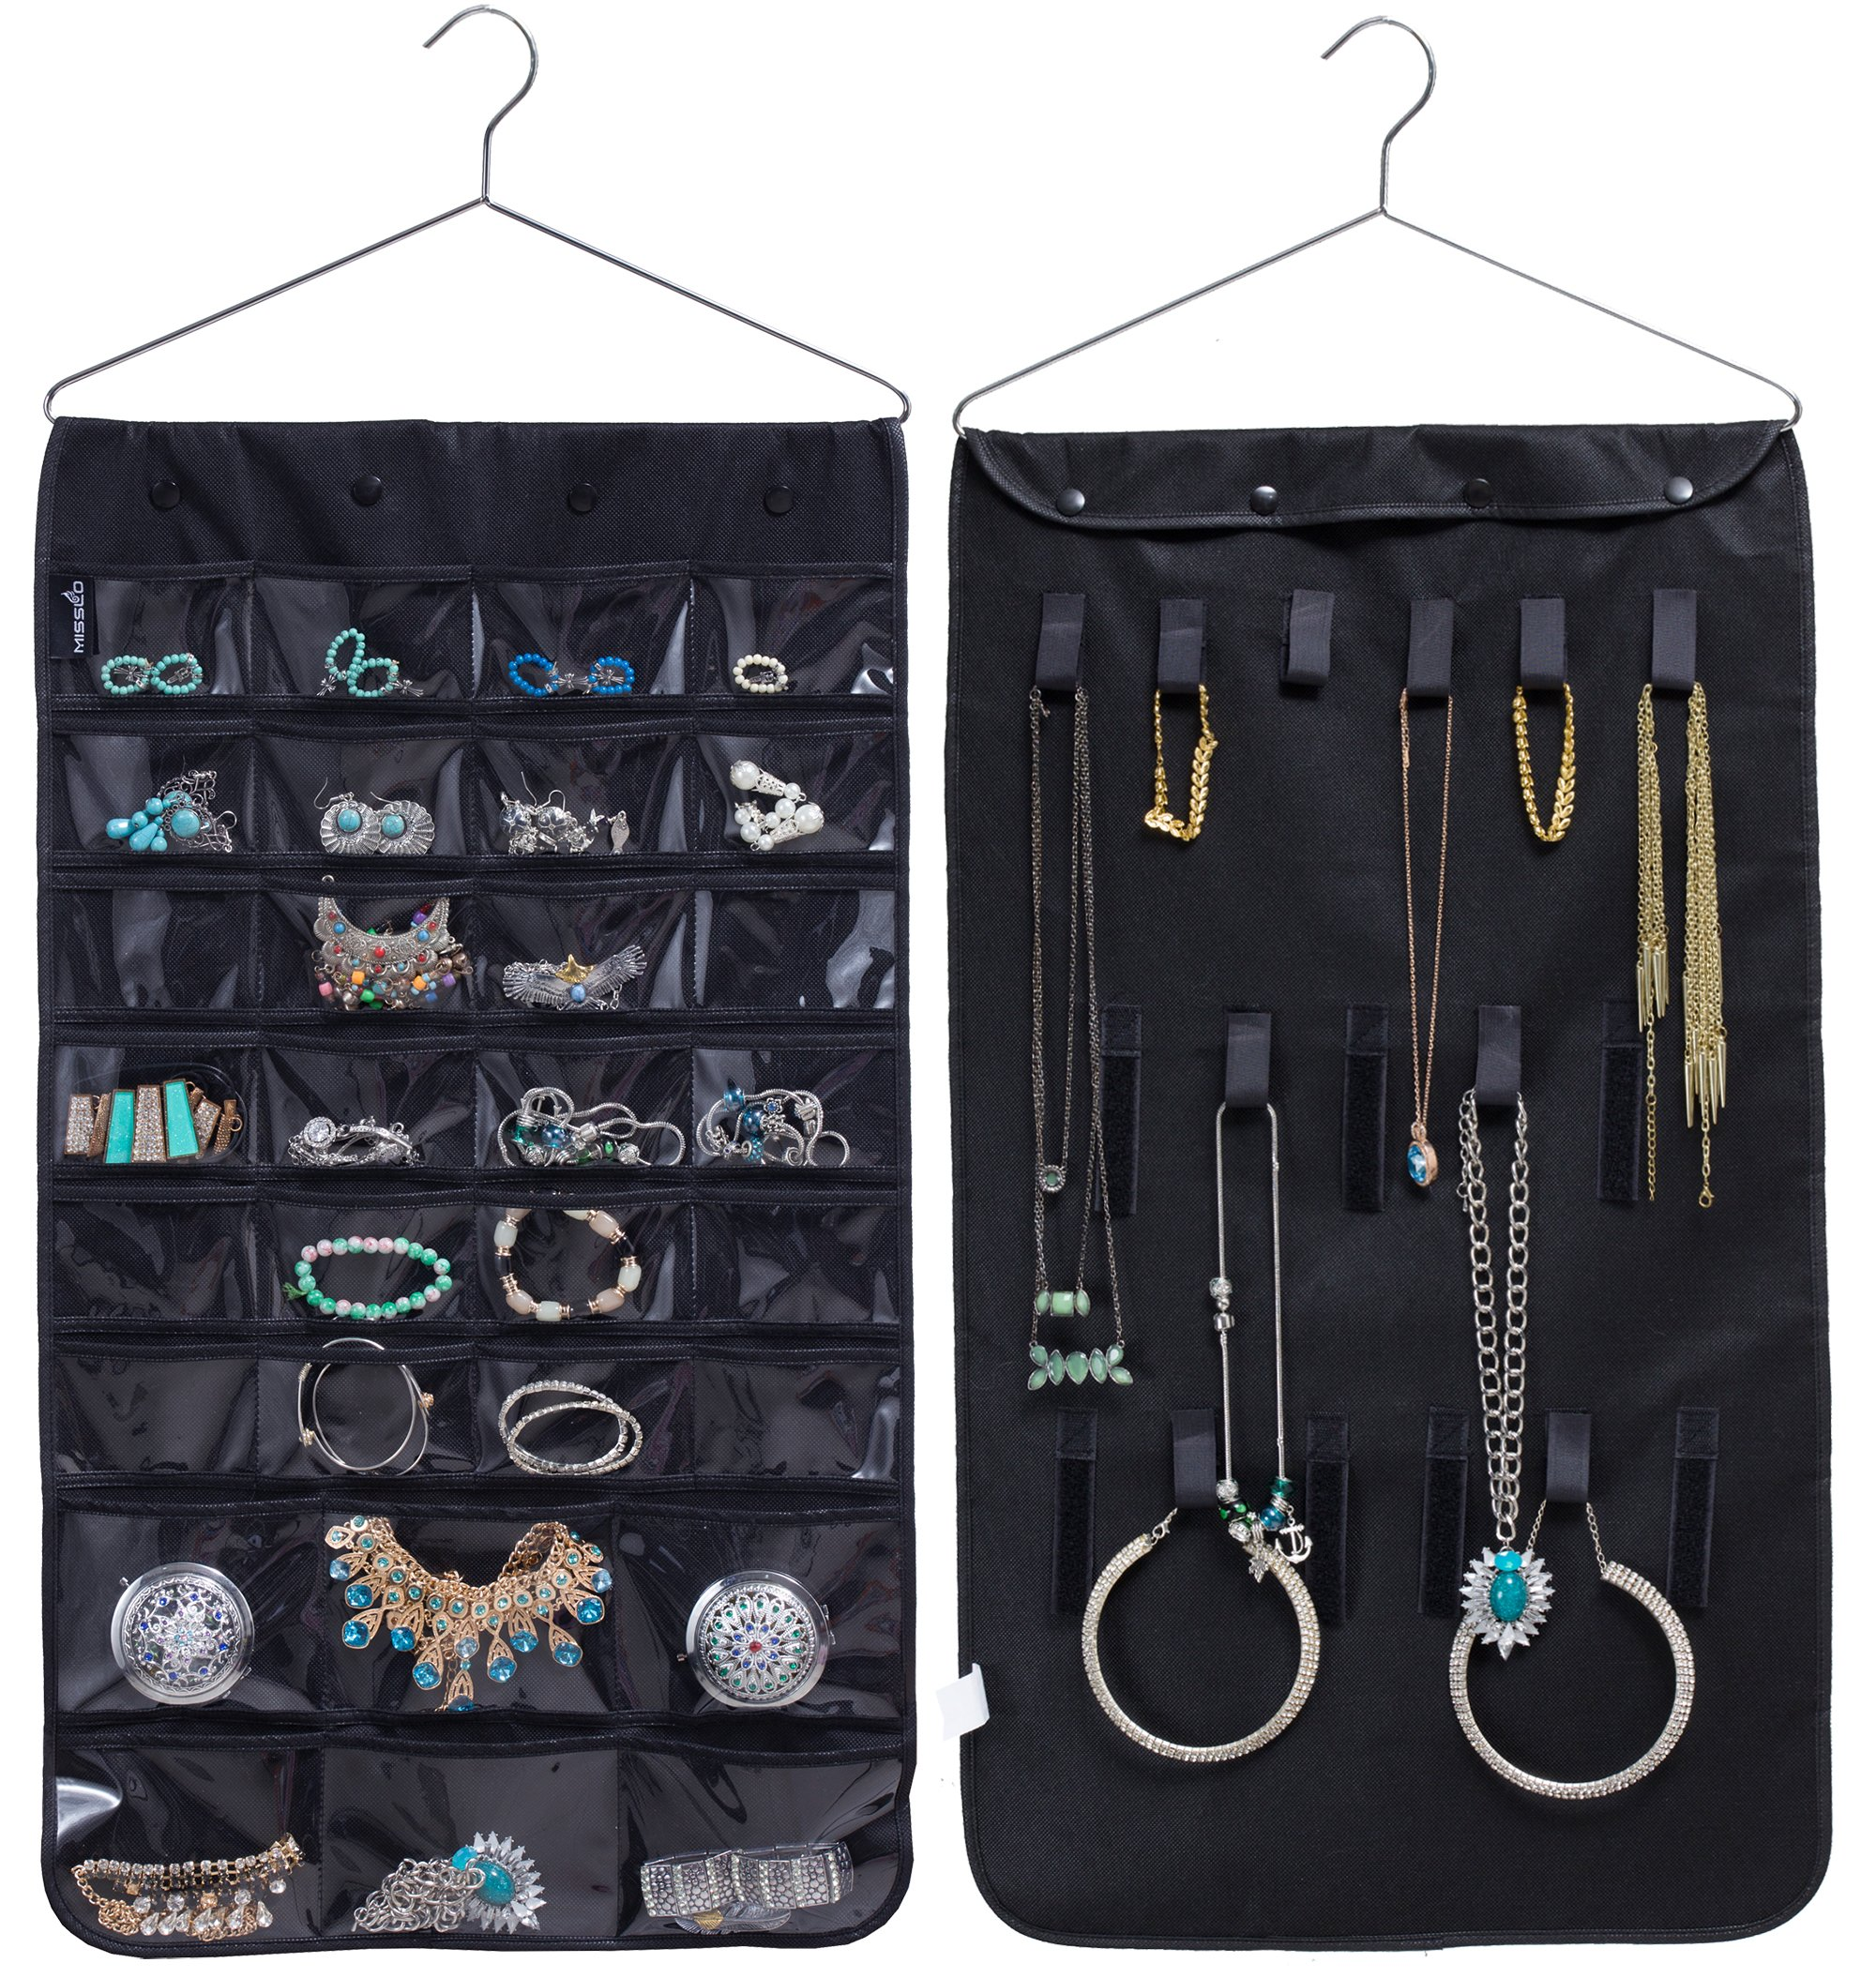 Organize Your Clothes 10 Creative And Effective Ways To Store And Hang Your Clothes: Best Rated In Hanging Jewelry Organizers & Helpful